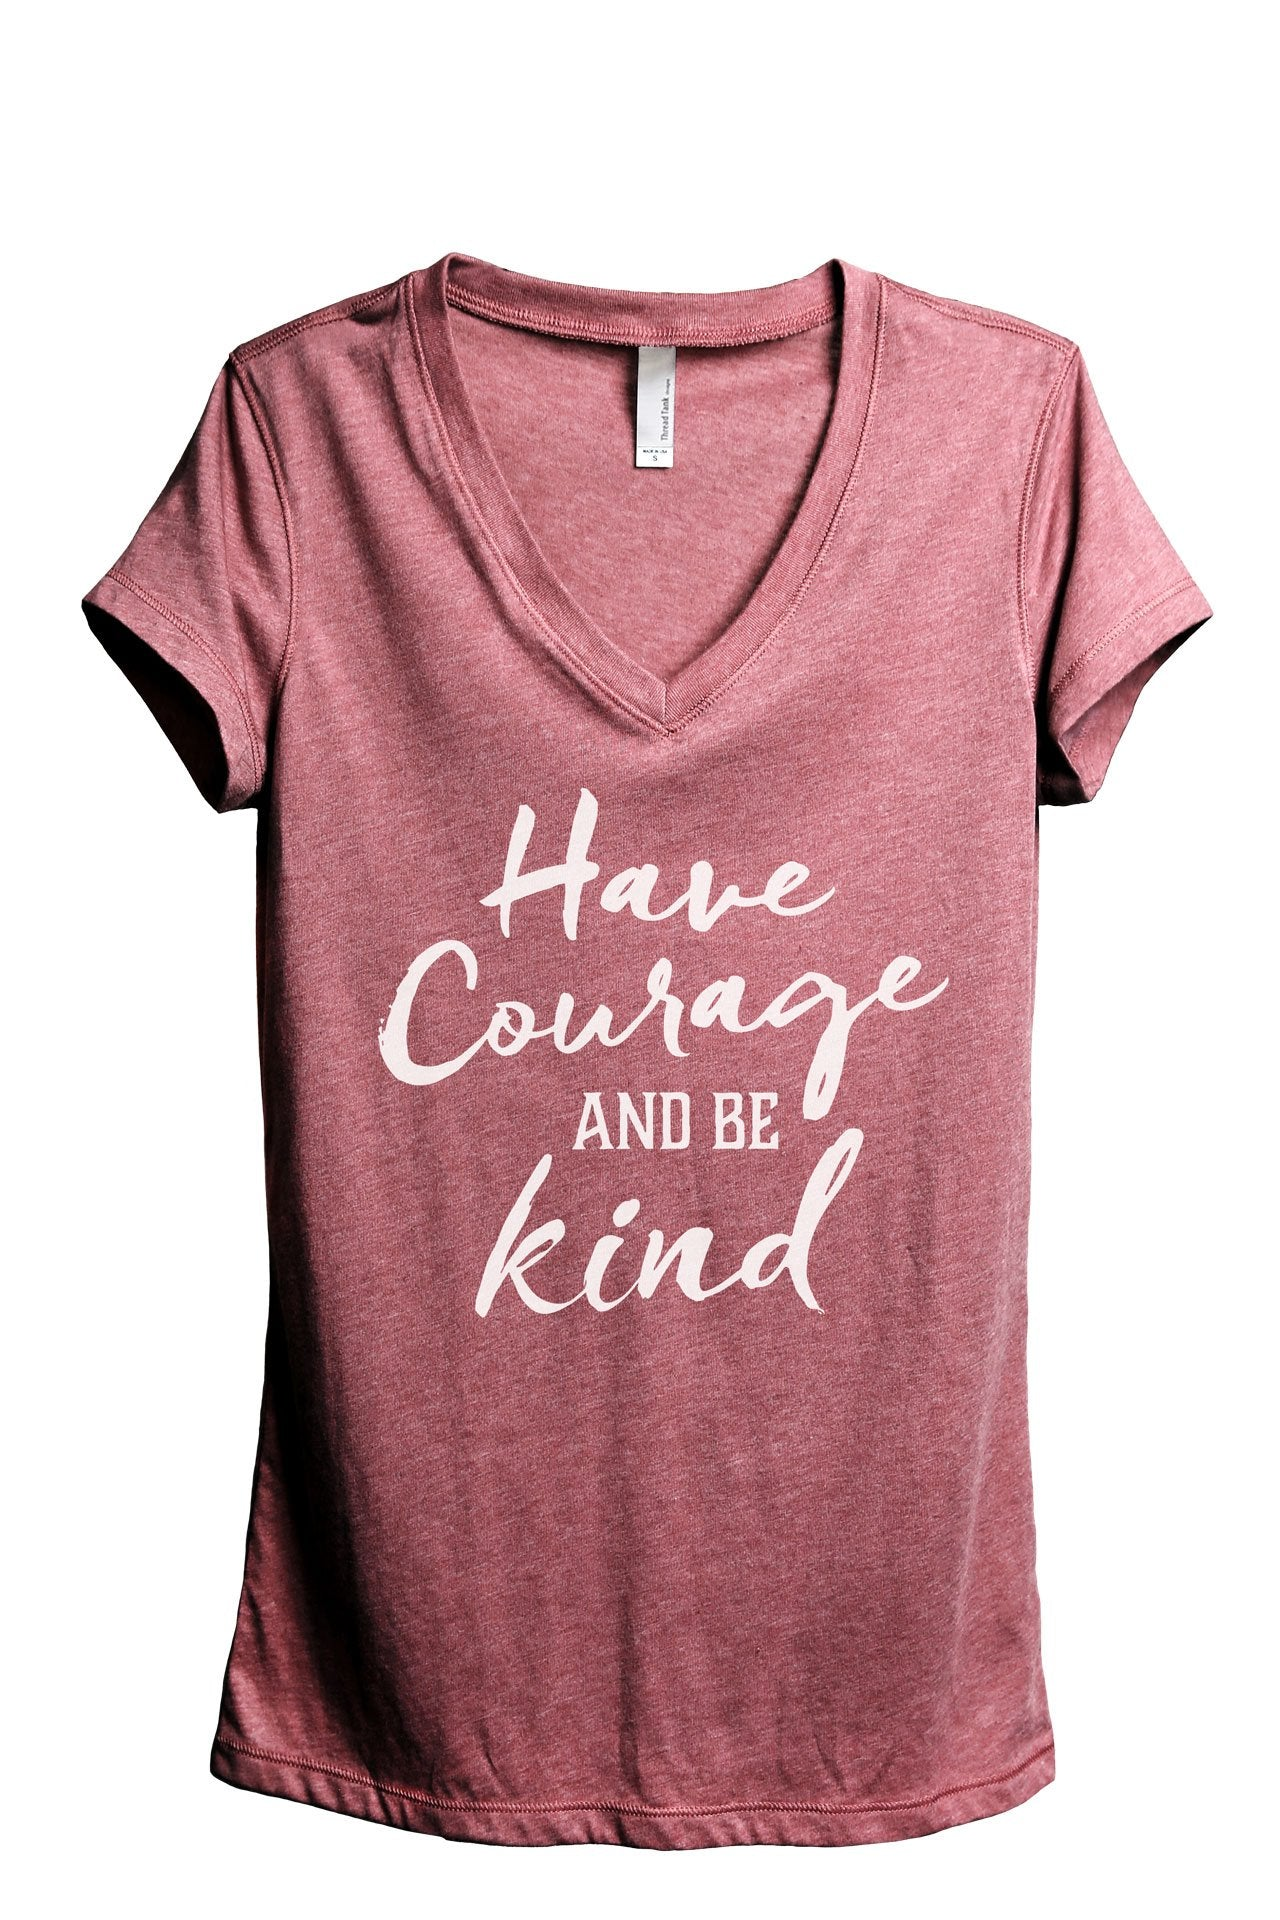 Courage Be Kind - Thread Tank | Stories You Can Wear | T-Shirts, Tank Tops and Sweatshirts